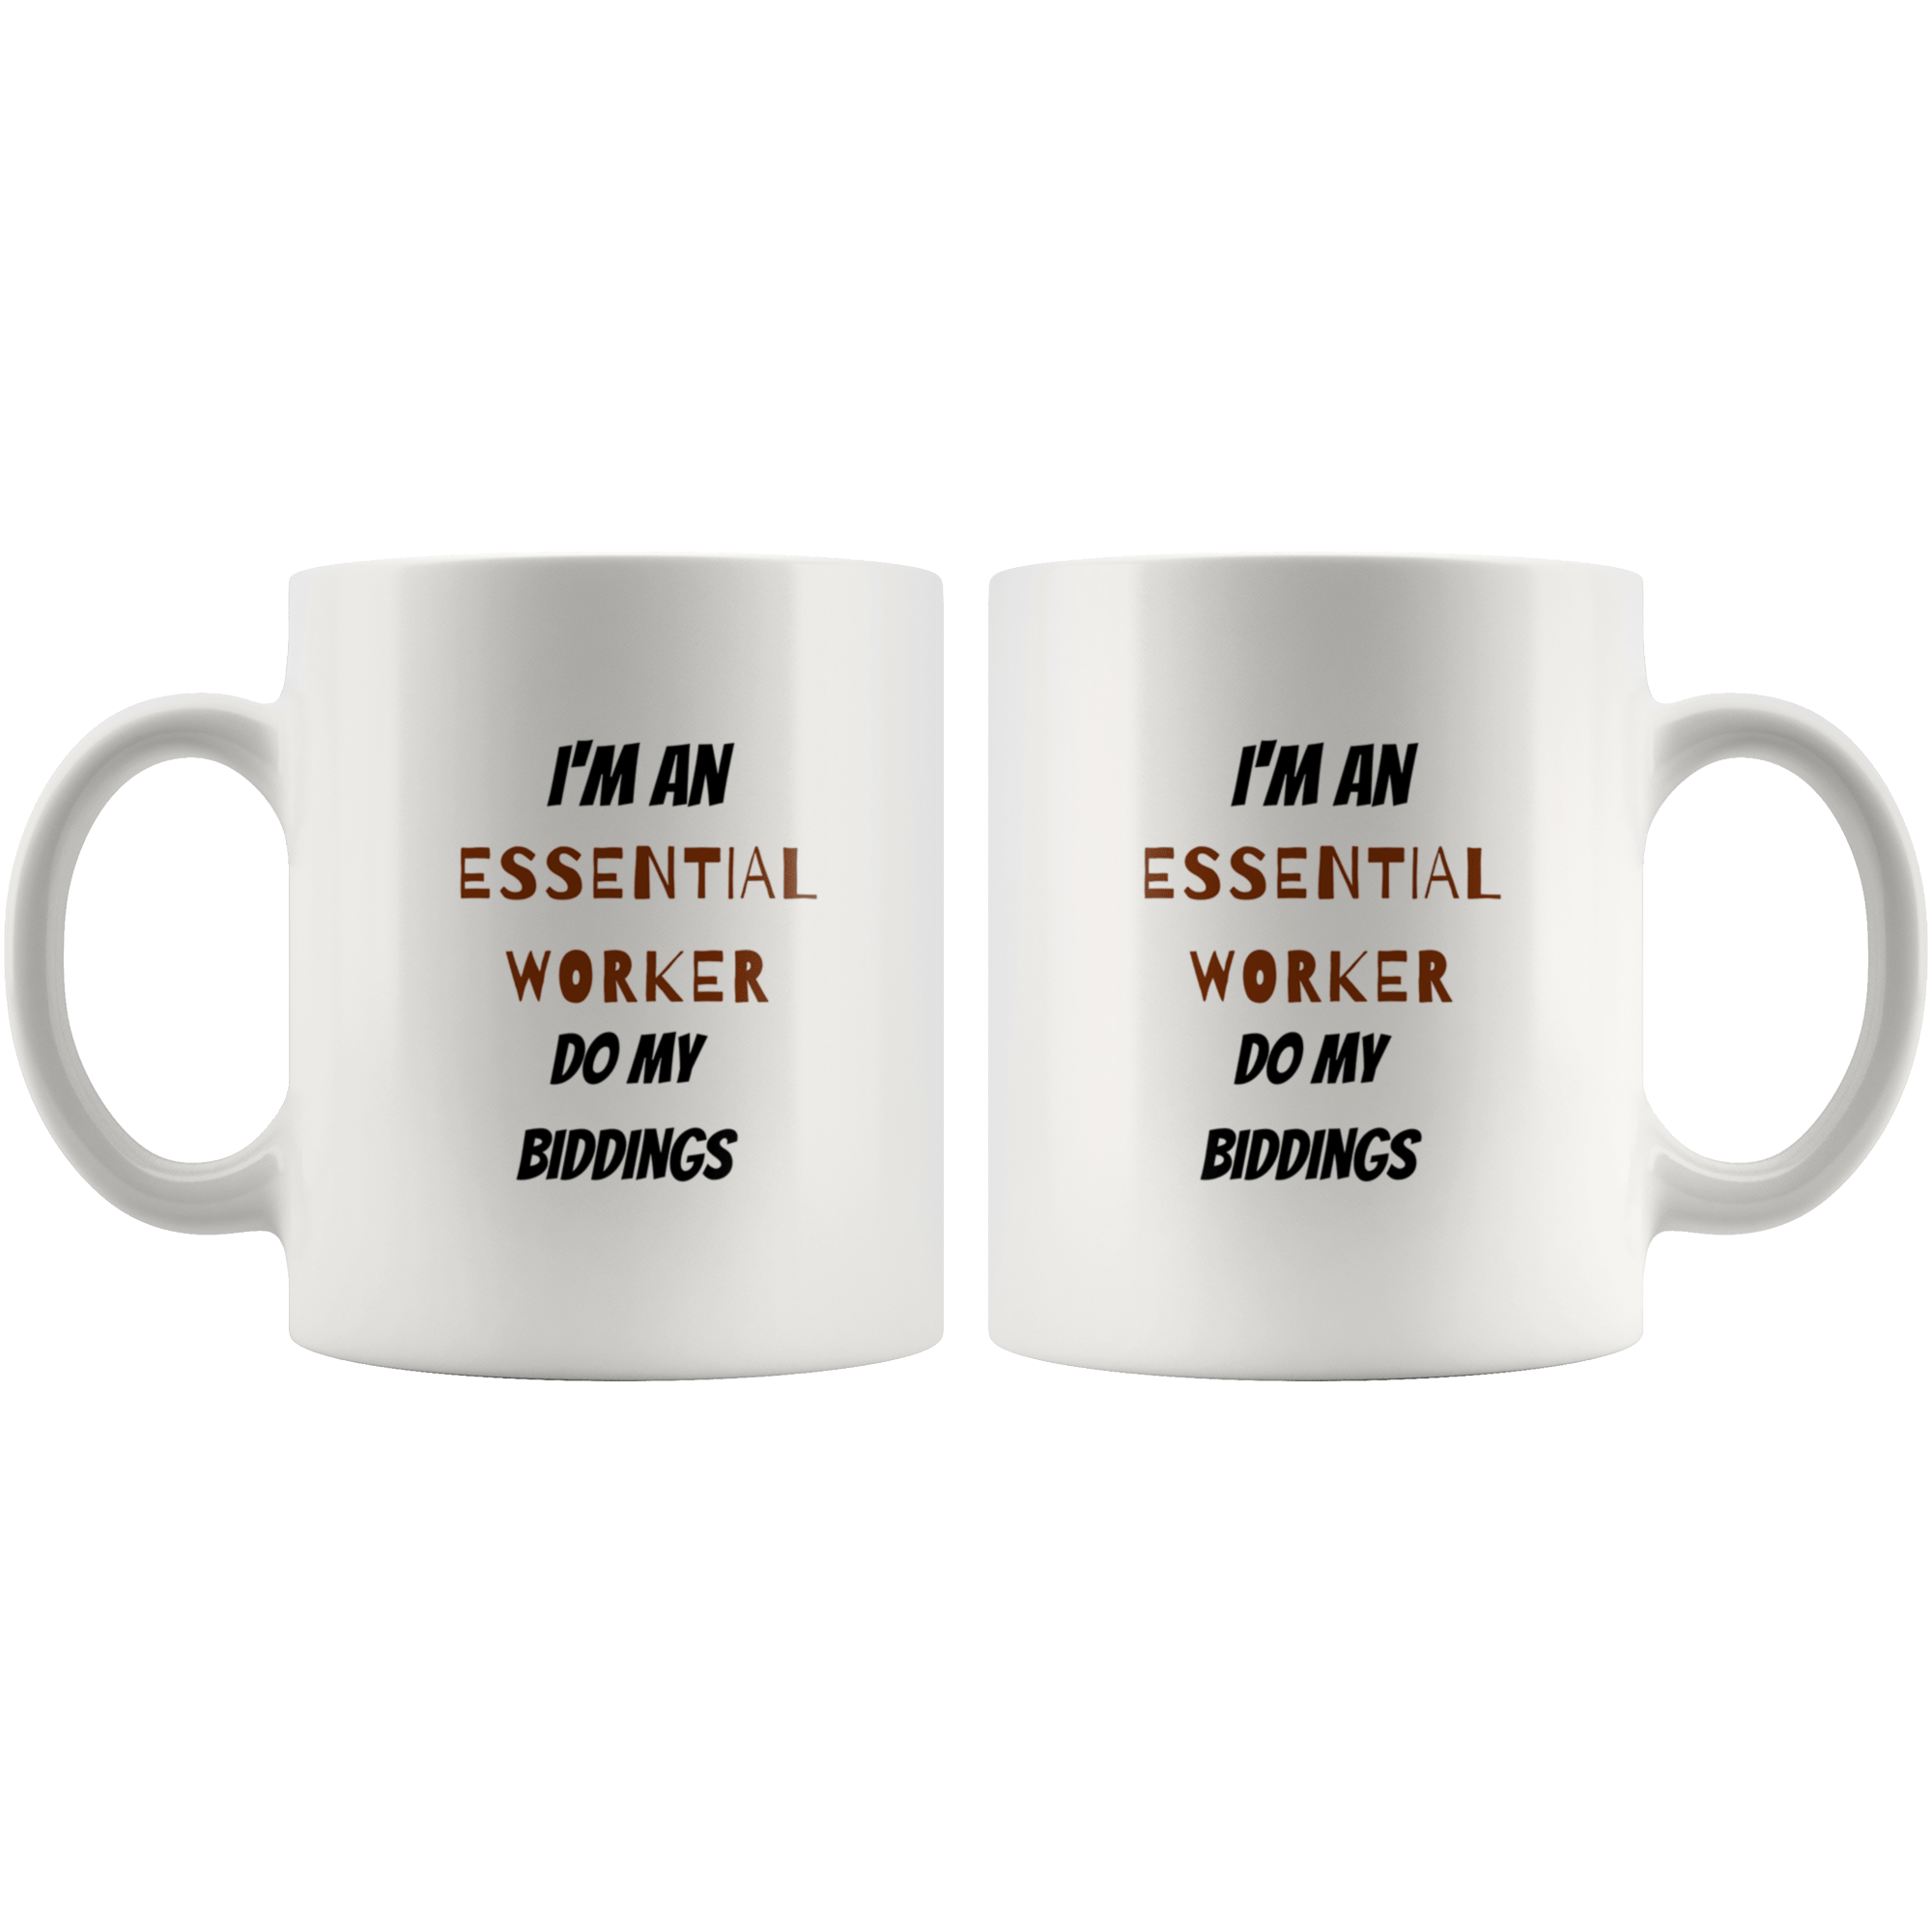 Essential Worker Mug Mugs Tatiez Boutique